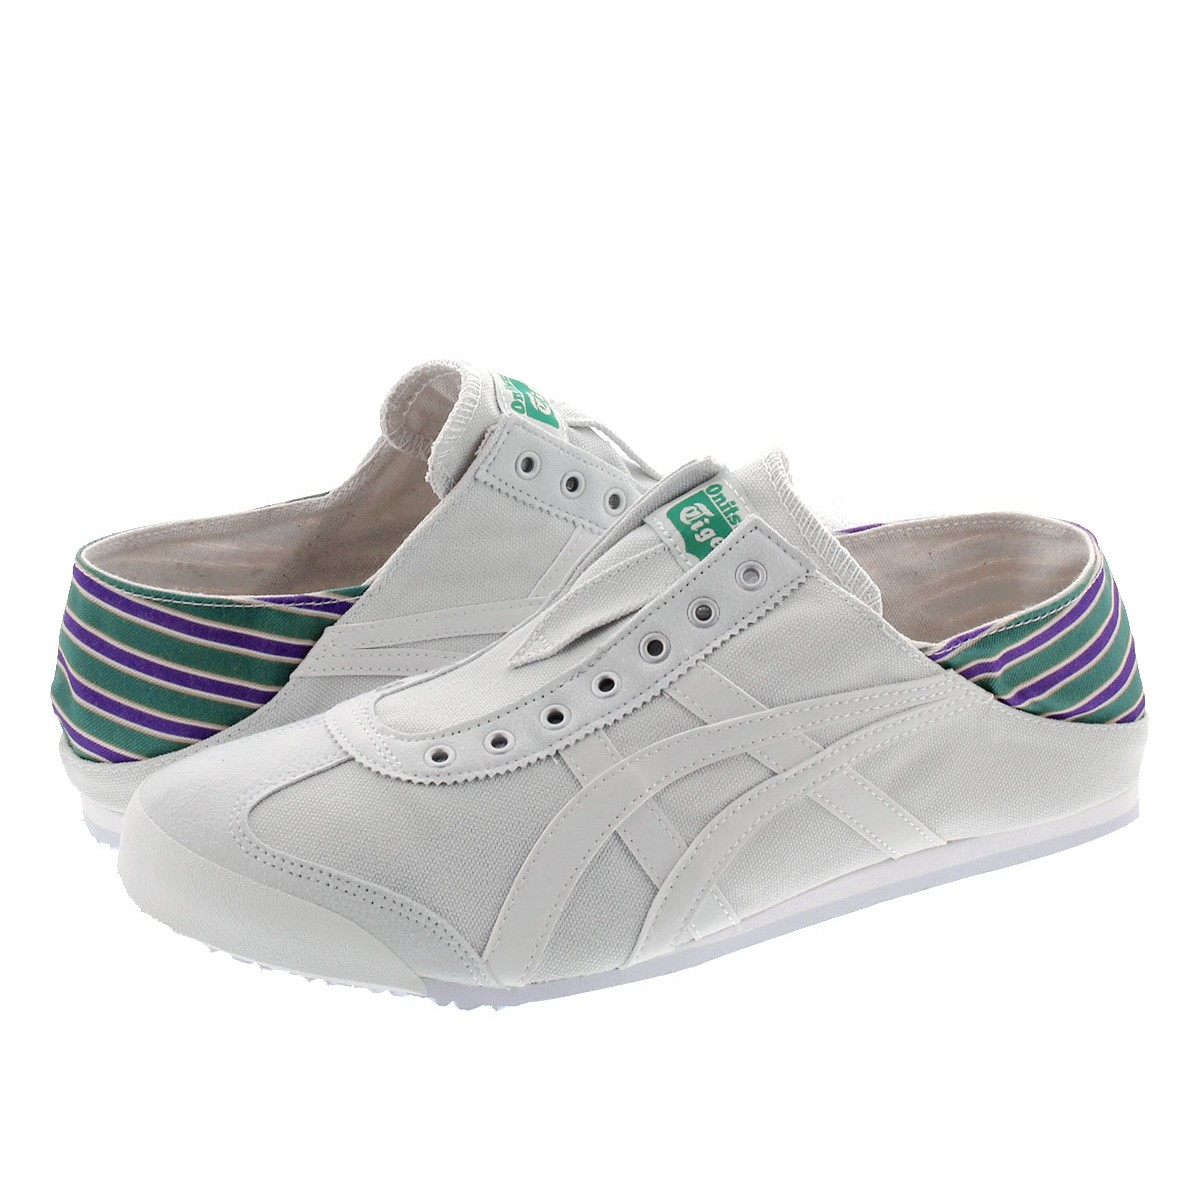 onitsuka tiger mexico 66 shoes review philippines weather brazil